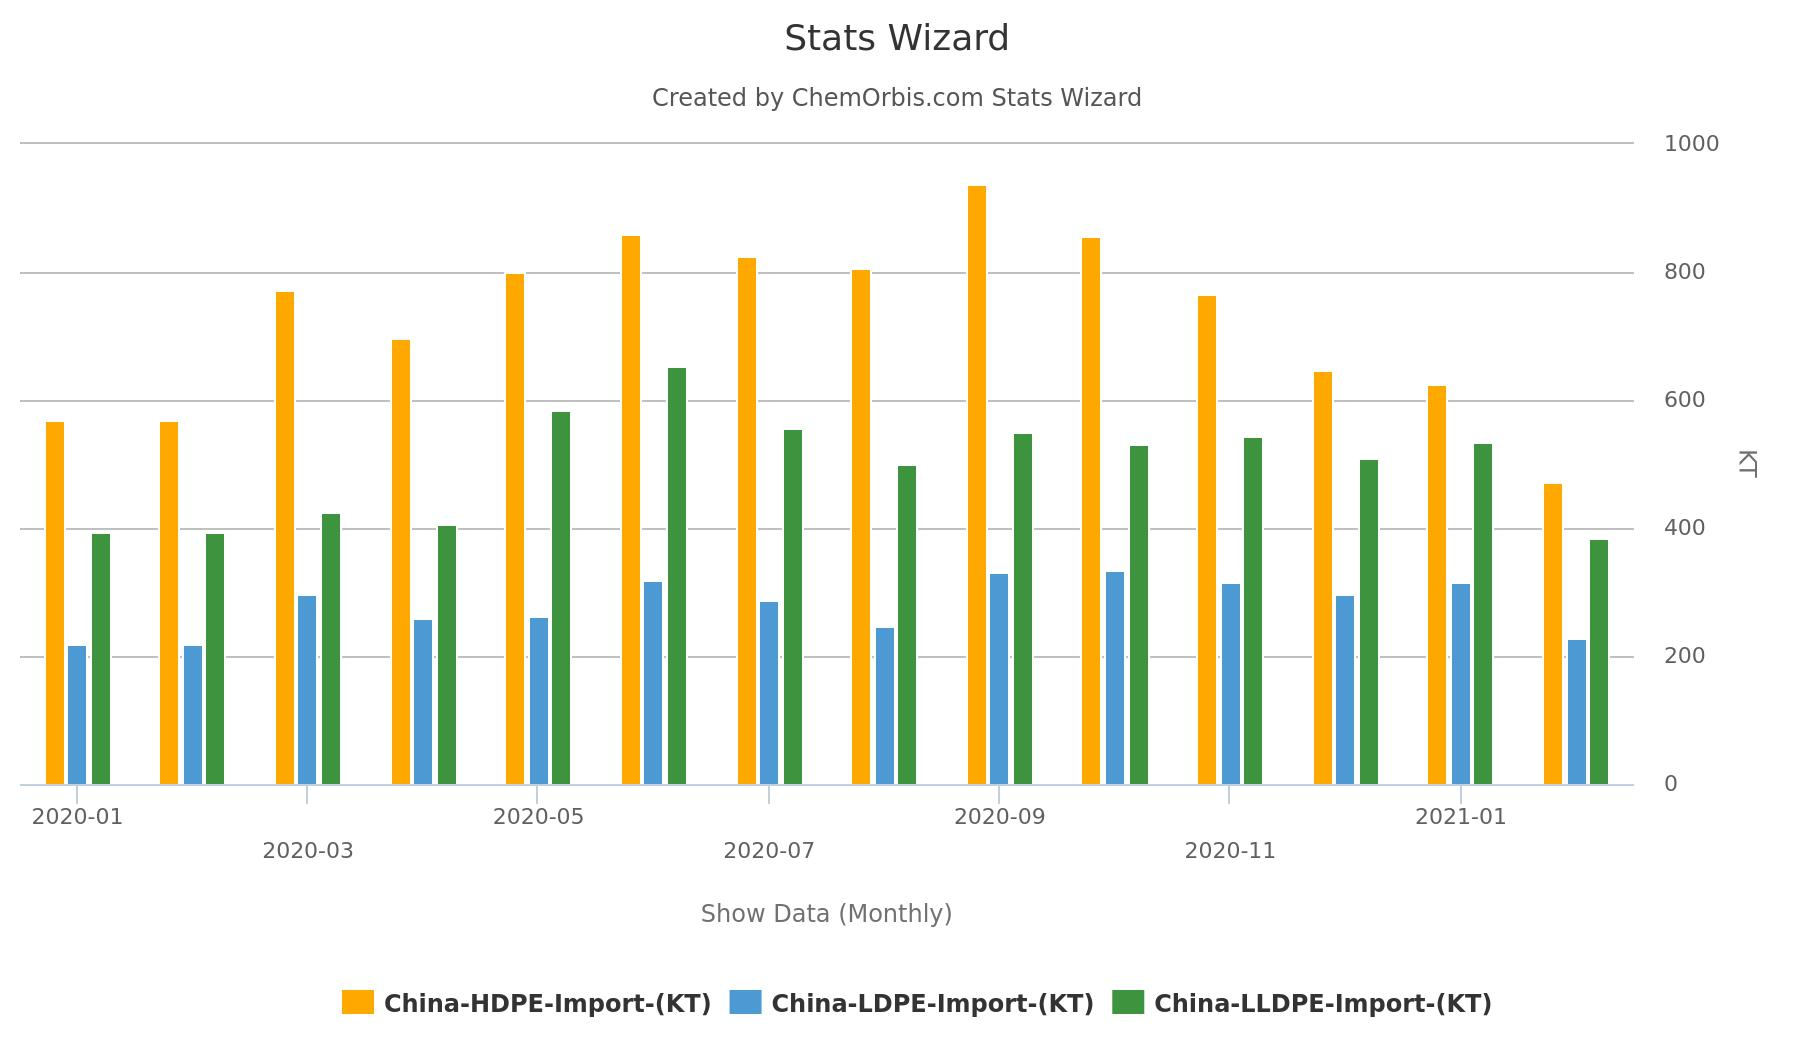 LDPE - HDPE - LLDPE - Imports in China